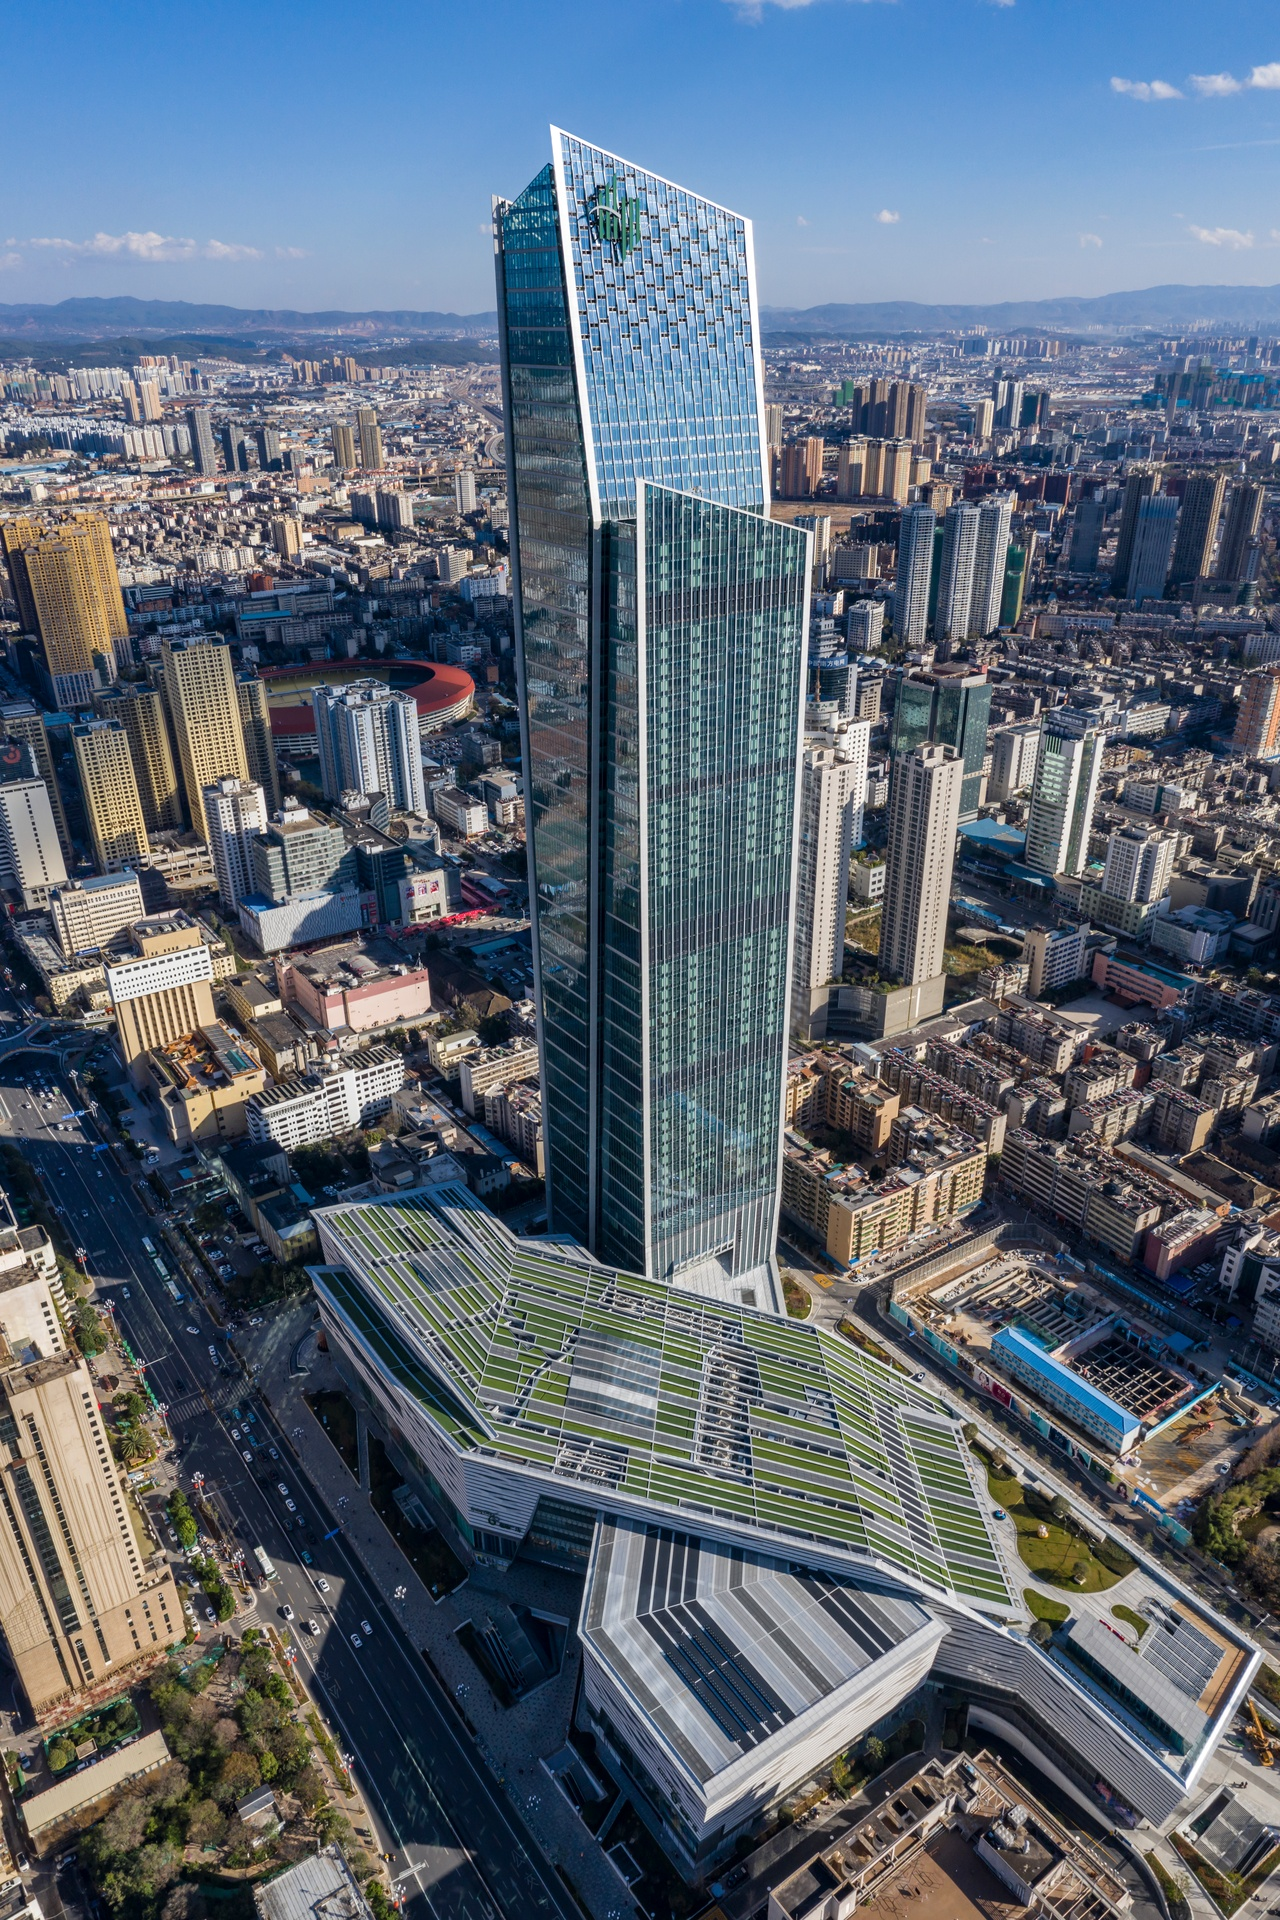 Spring City 66 in Kunming, developed by Hang Lung Properties